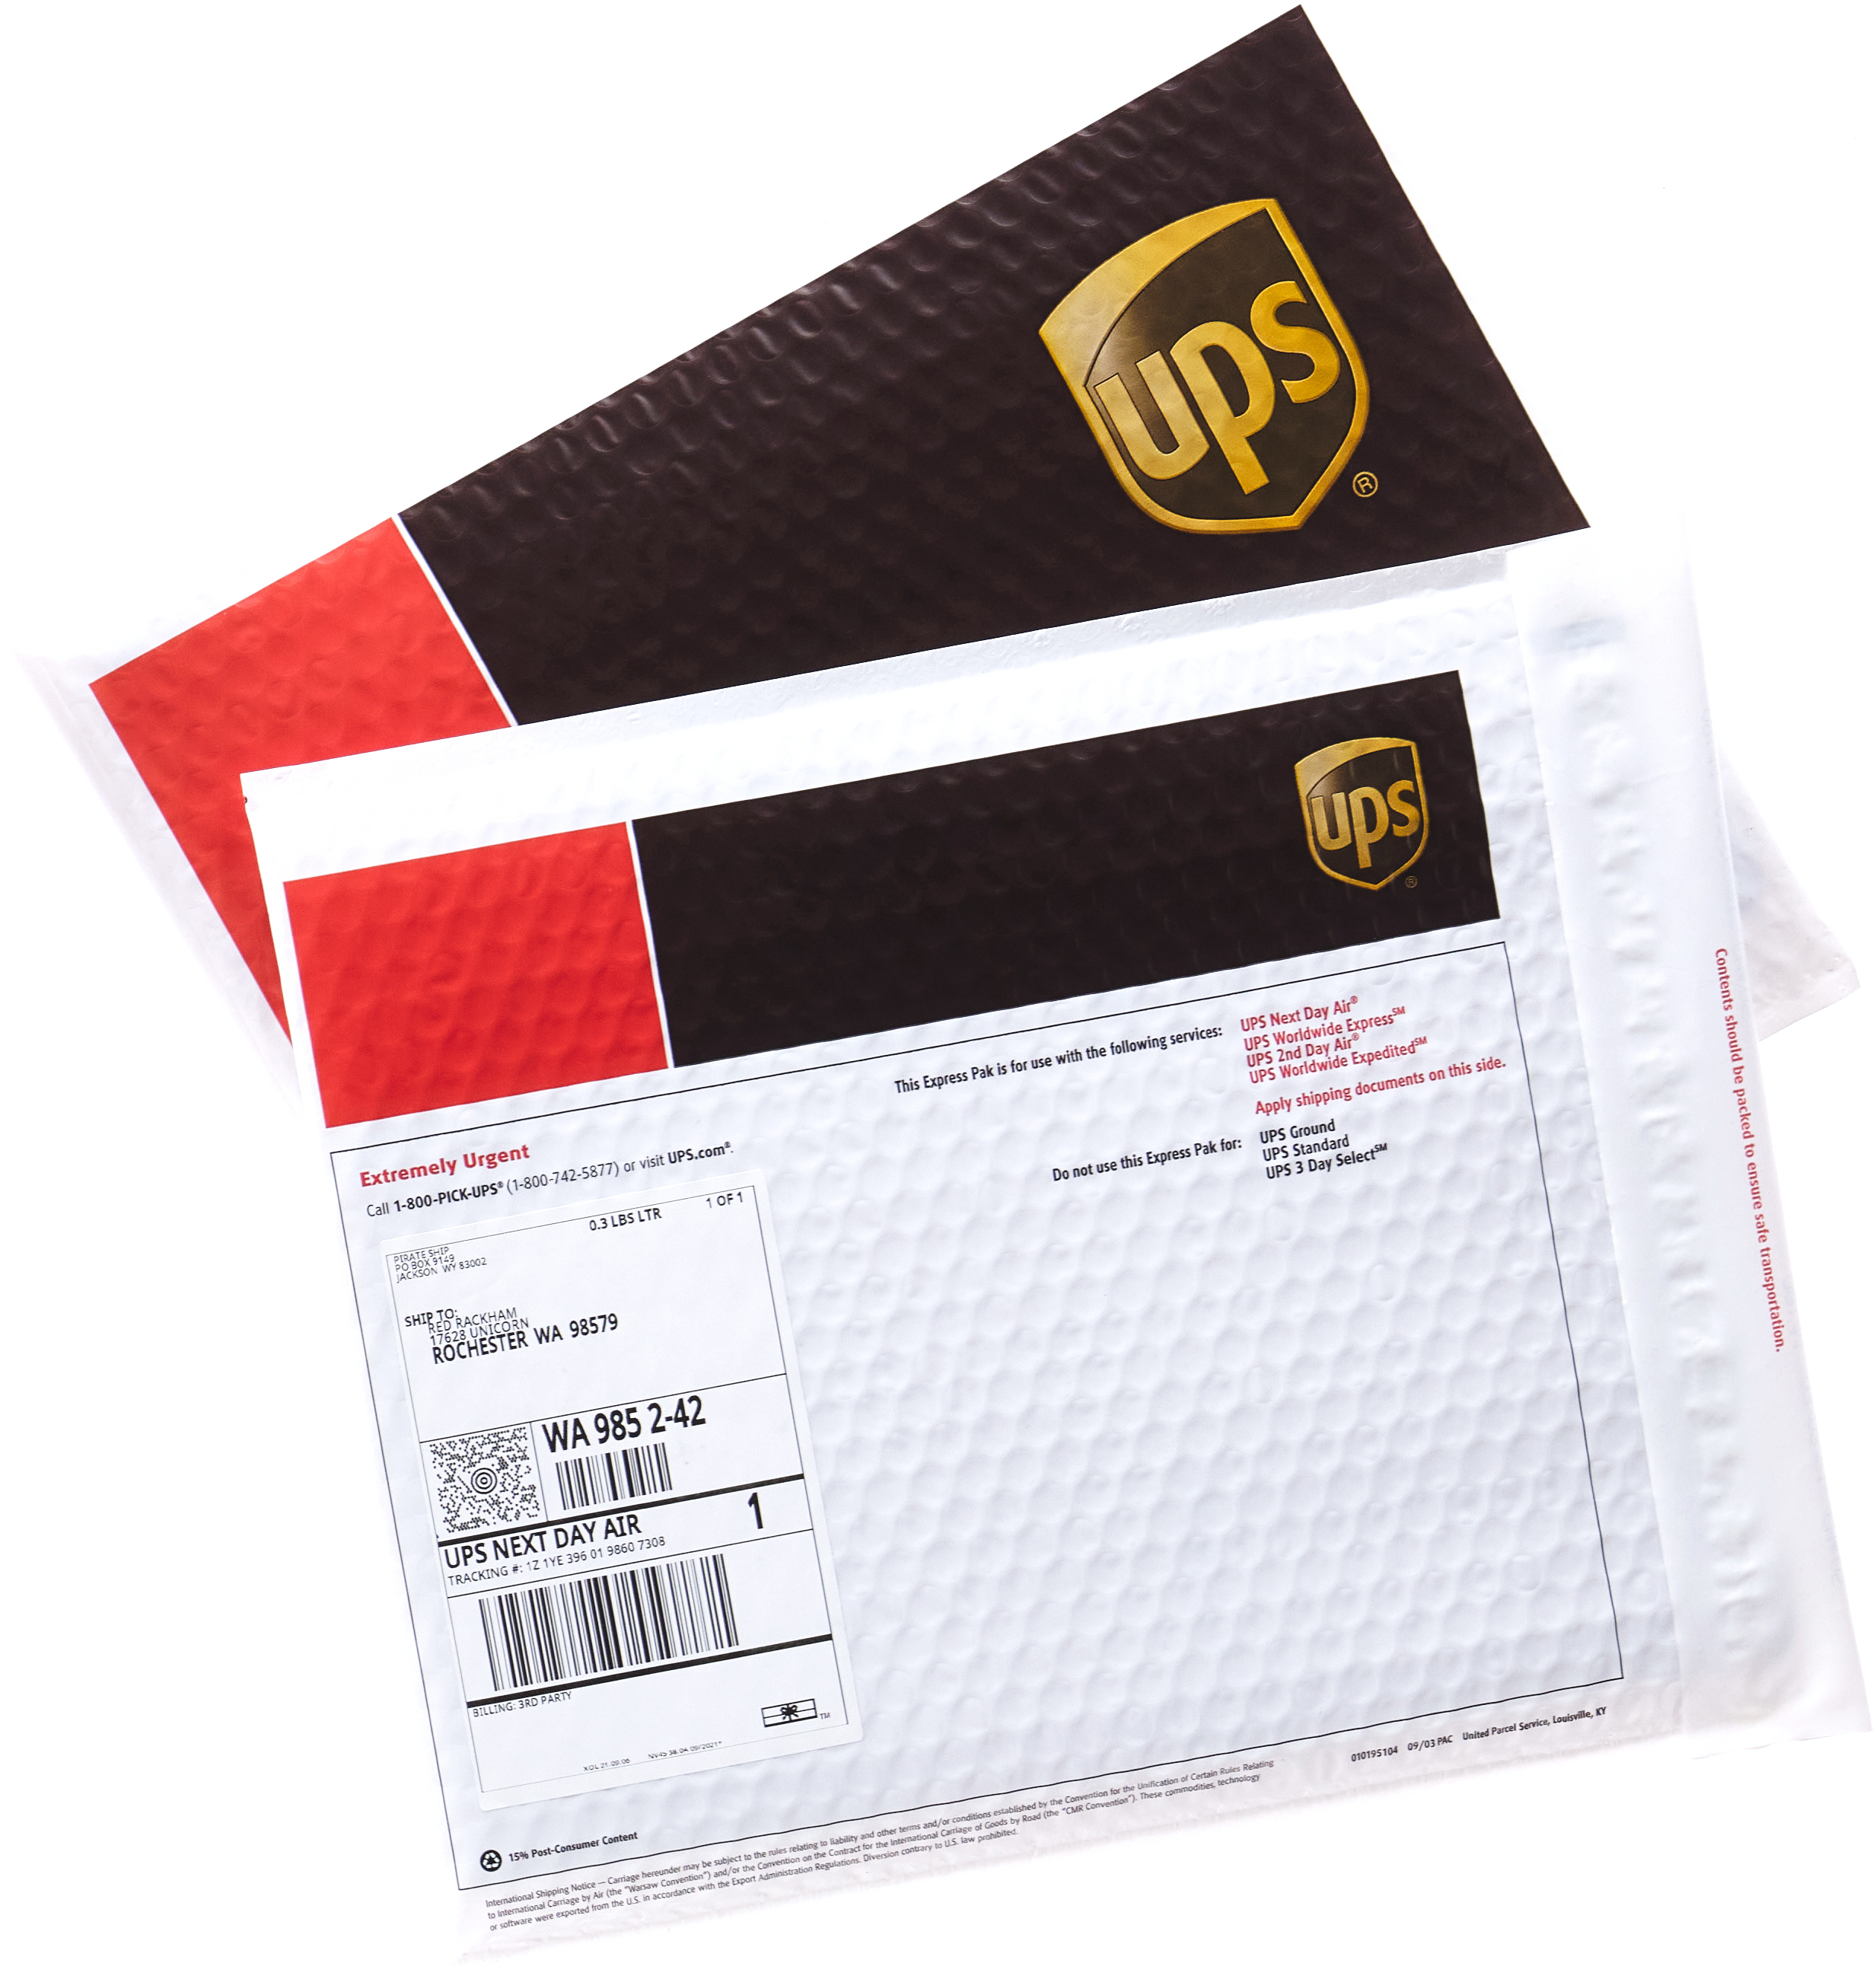 UPS Express Paks with Next Day Air shipping labels